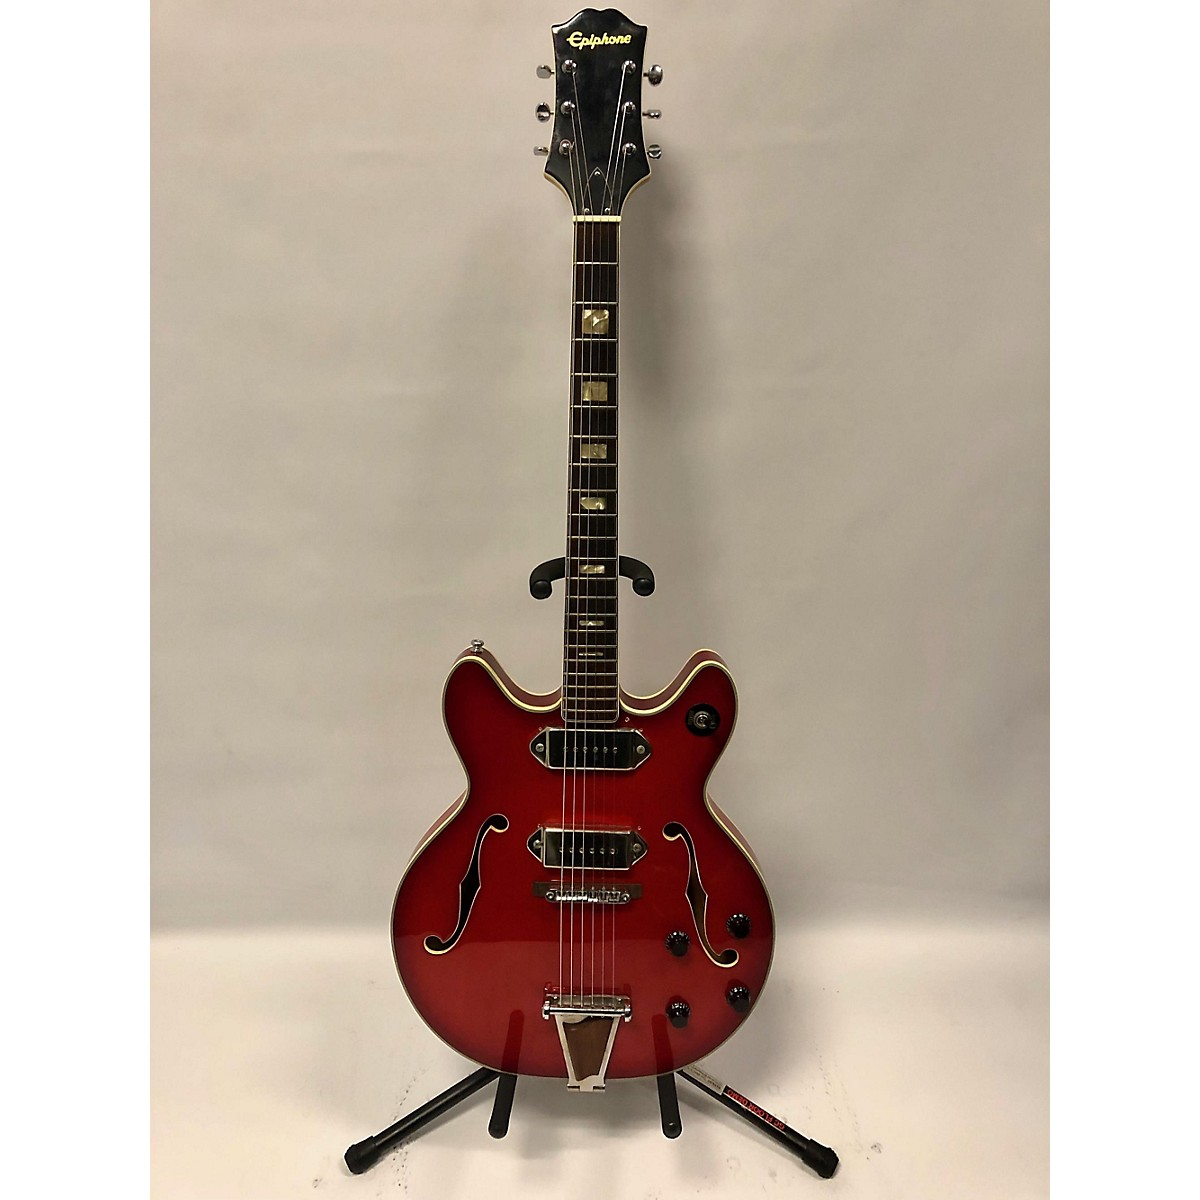 Epiphone 5102T Hollow Body Electric Guitar